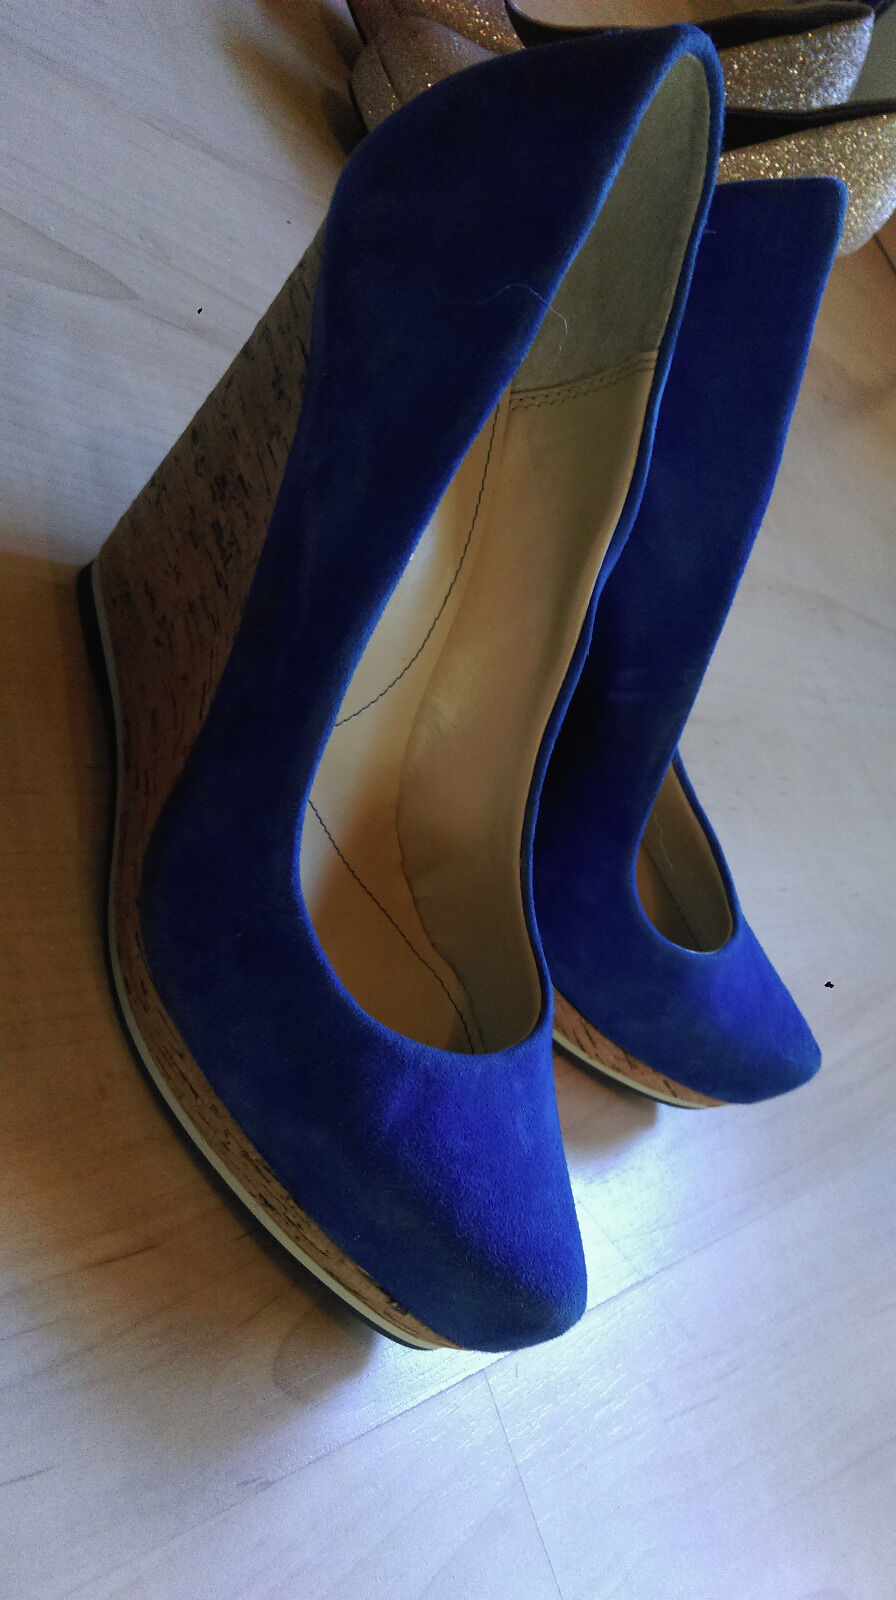 NEU  PUMPS   LUXURY REBEL PUMPS  BLAU Größe 38 17908e